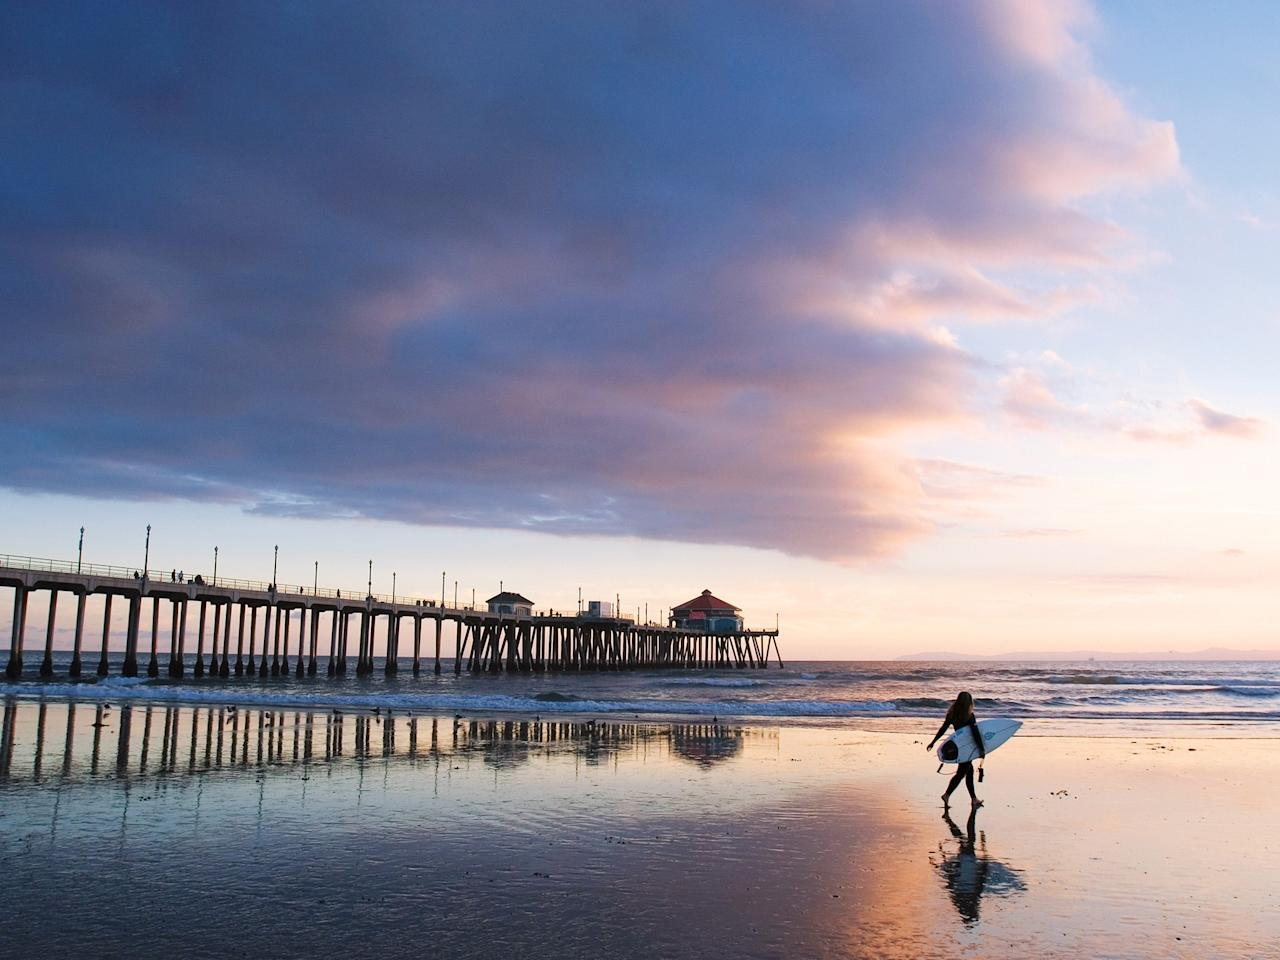 "<p><strong>Why we love it:</strong> This town is known as Surf City, USA, for a reason: Huntington City Beach has the most consistent break in the country, making it popular with both first-time and experienced surfers. As a bonus, you'll also get some five-star people watching all along the Huntington Beach Pier. To avoid the crowds, place your beach blankets down north of the pier. (When you're officially over the crowds, split for Bolsa Chica Beach, a 10-minute drive away.)</p> <p><br> <strong>How to get there:</strong> If you're coming from <a href=""https://www.cntraveler.com/destinations/los-angeles?mbid=synd_yahoo_rss"">L.A.</a>, just zip down the 405 and take the Seal Beach exit. From there, head south on the Pacific Coast Highway until you hit the pier. </p> <p><br> <strong>Other things to do:</strong> The pier is one the longest on the West Coast. At the end you'll find a Ruby's Diner, which has the popular Jan & Dean's tiki lounge on the second floor. For a change of scenery, drive 15 minutes to Newport Beach and visit the Upper Newport Bay Nature Reserve or stroll through the charming <a href=""https://www.visitnewportbeach.com/vacations/balboa-village/"">Balboa Village.</a></p>"